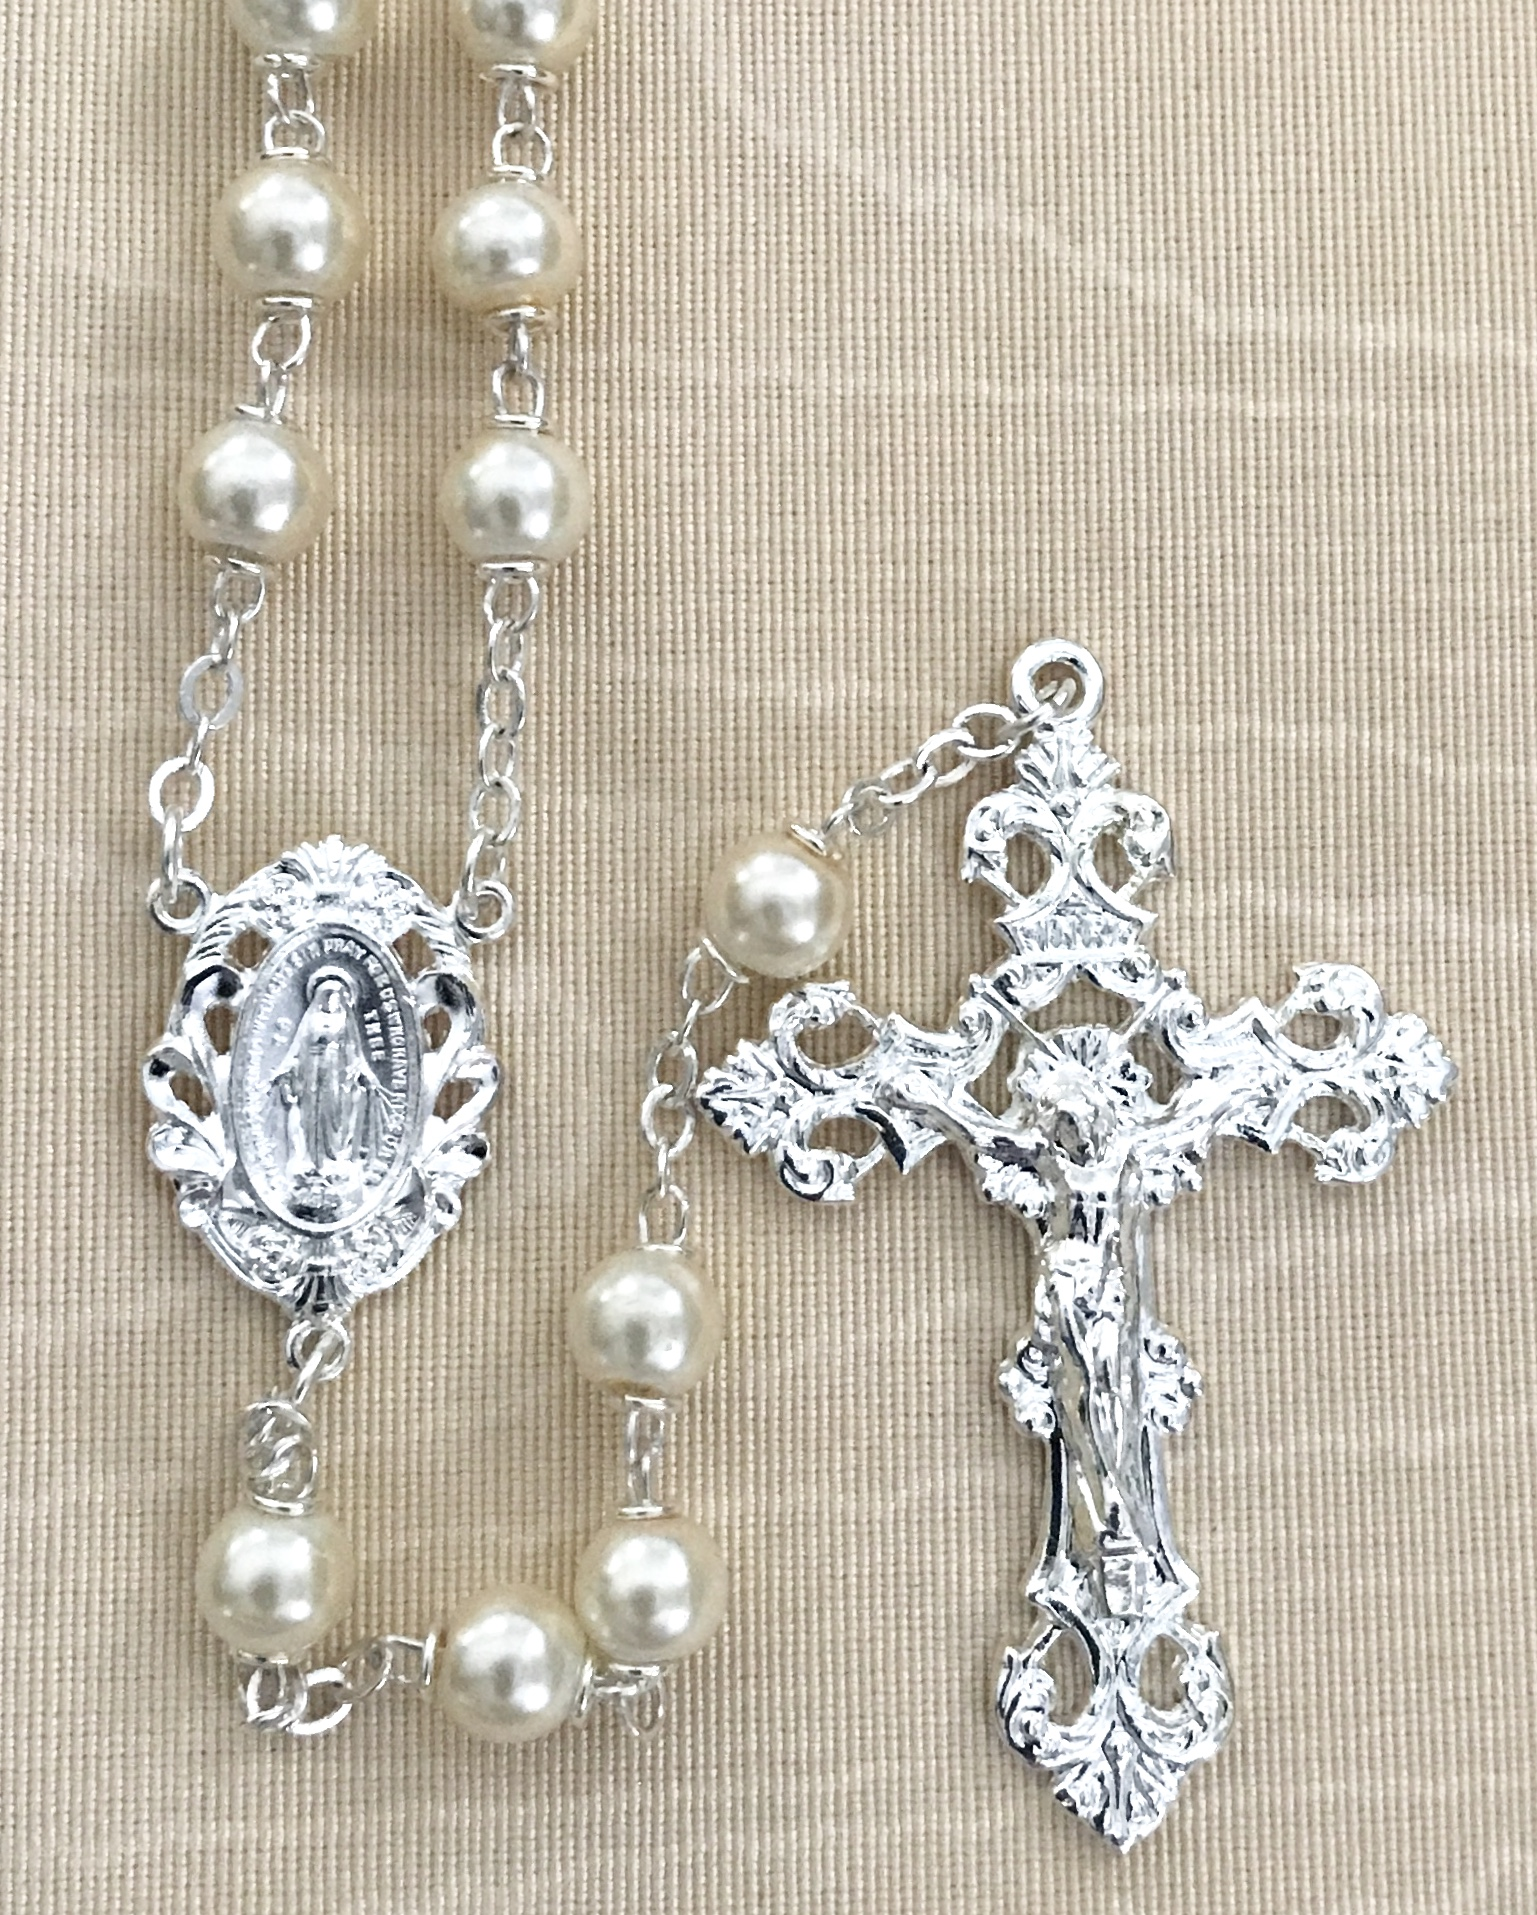 7mm ROUND PEARL ROSARY WITH STERLING SILVER PLATED CRUCIFIX AND CENTER GIFT BOXED